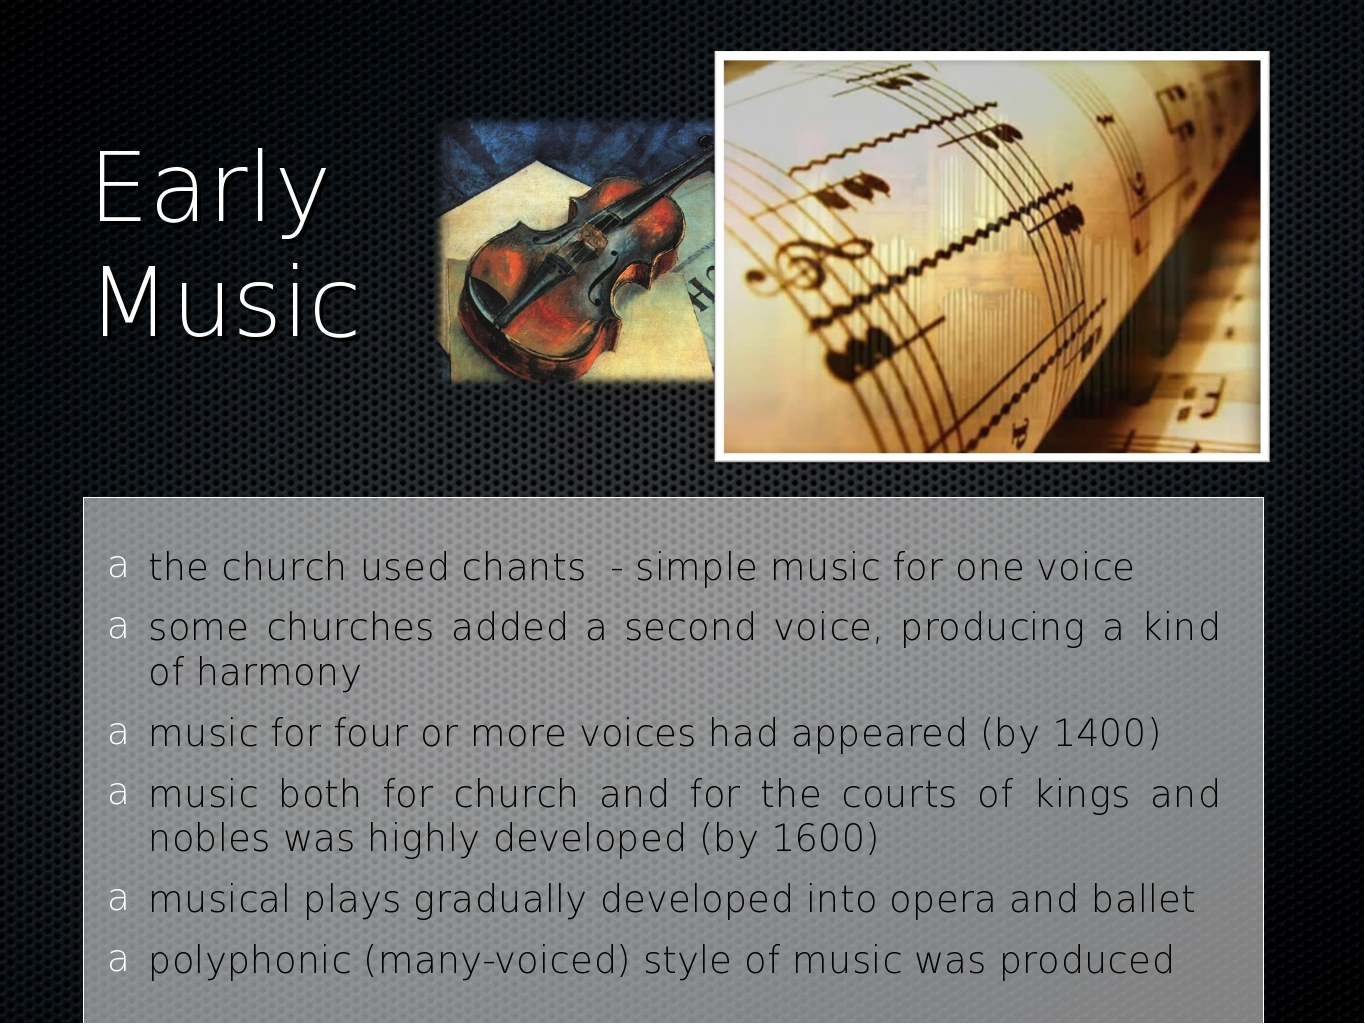 Early Music the church used chants - simple music for one voice some churches...